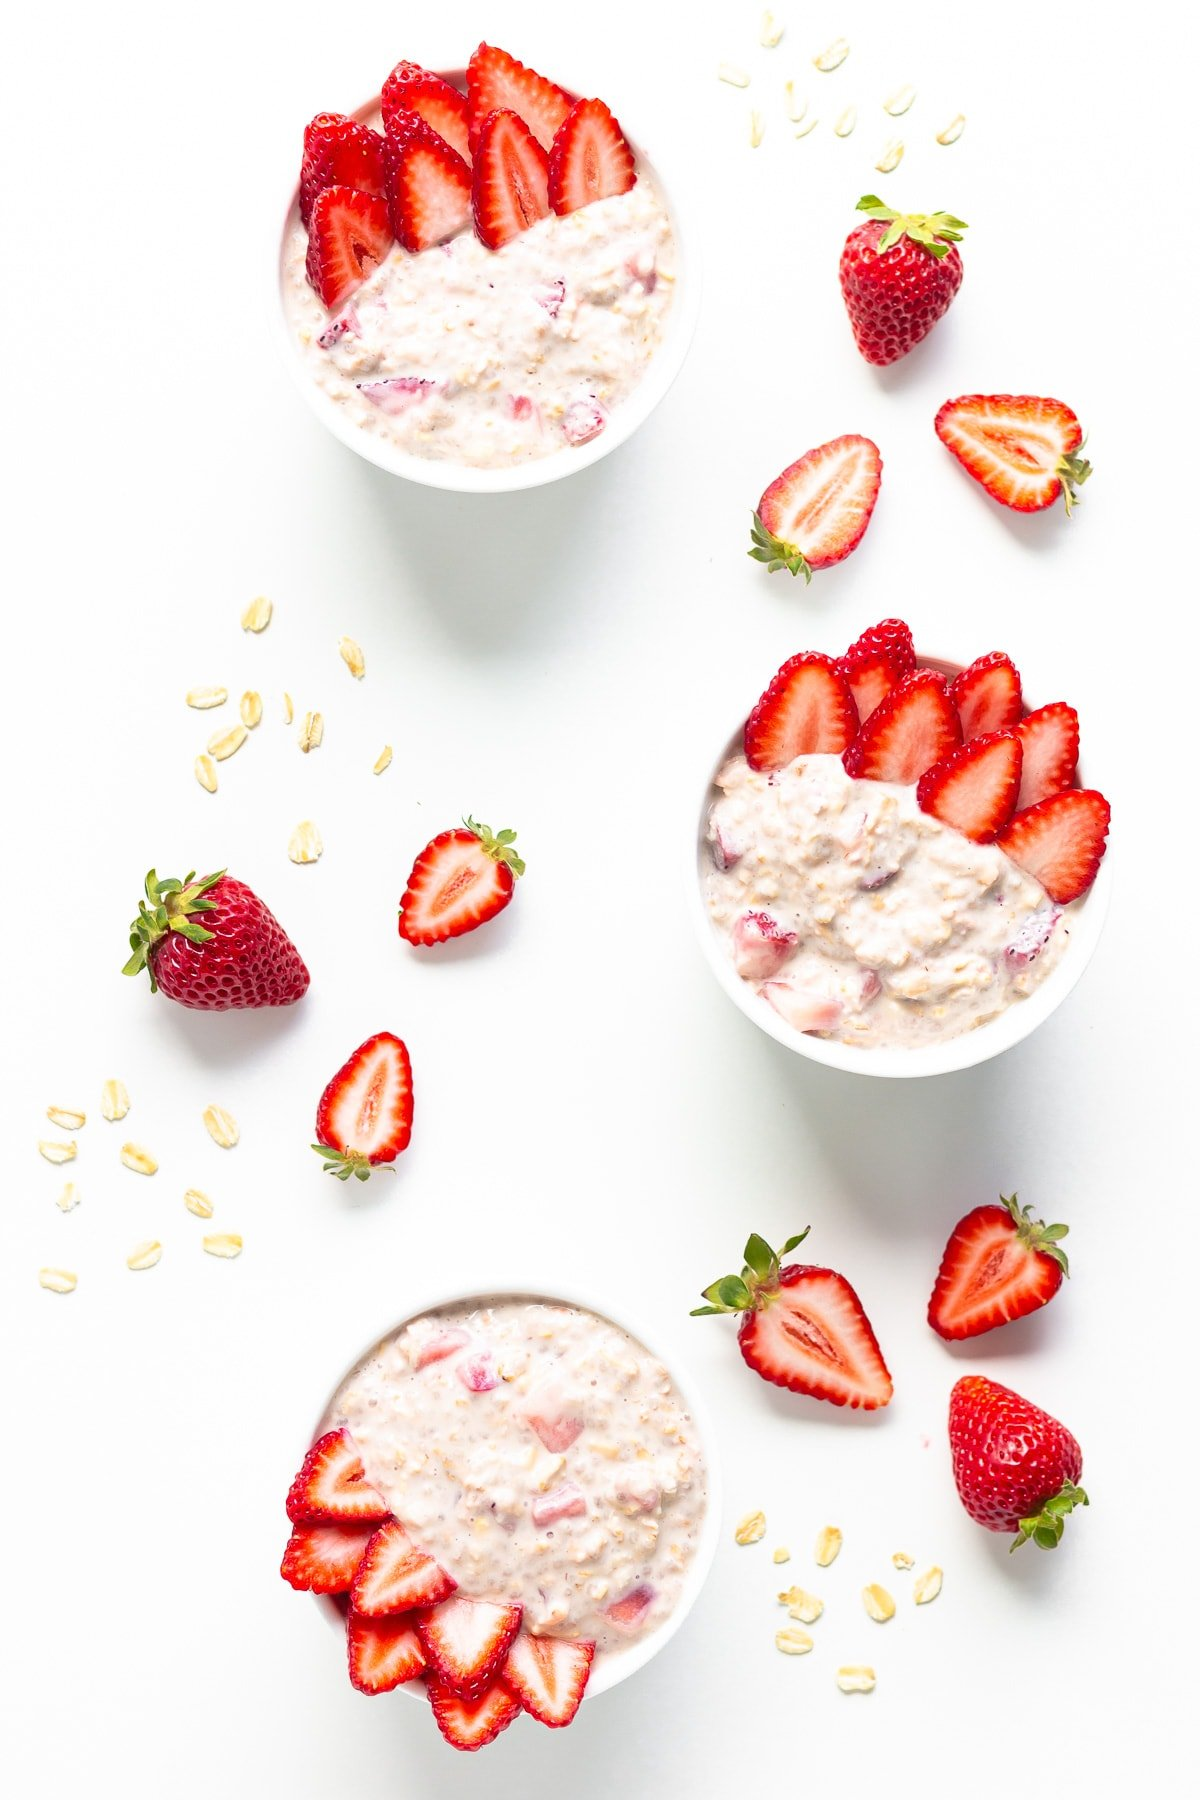 Three bowls of strawberry overnight oats on a white background garnished with fresh strawberries.